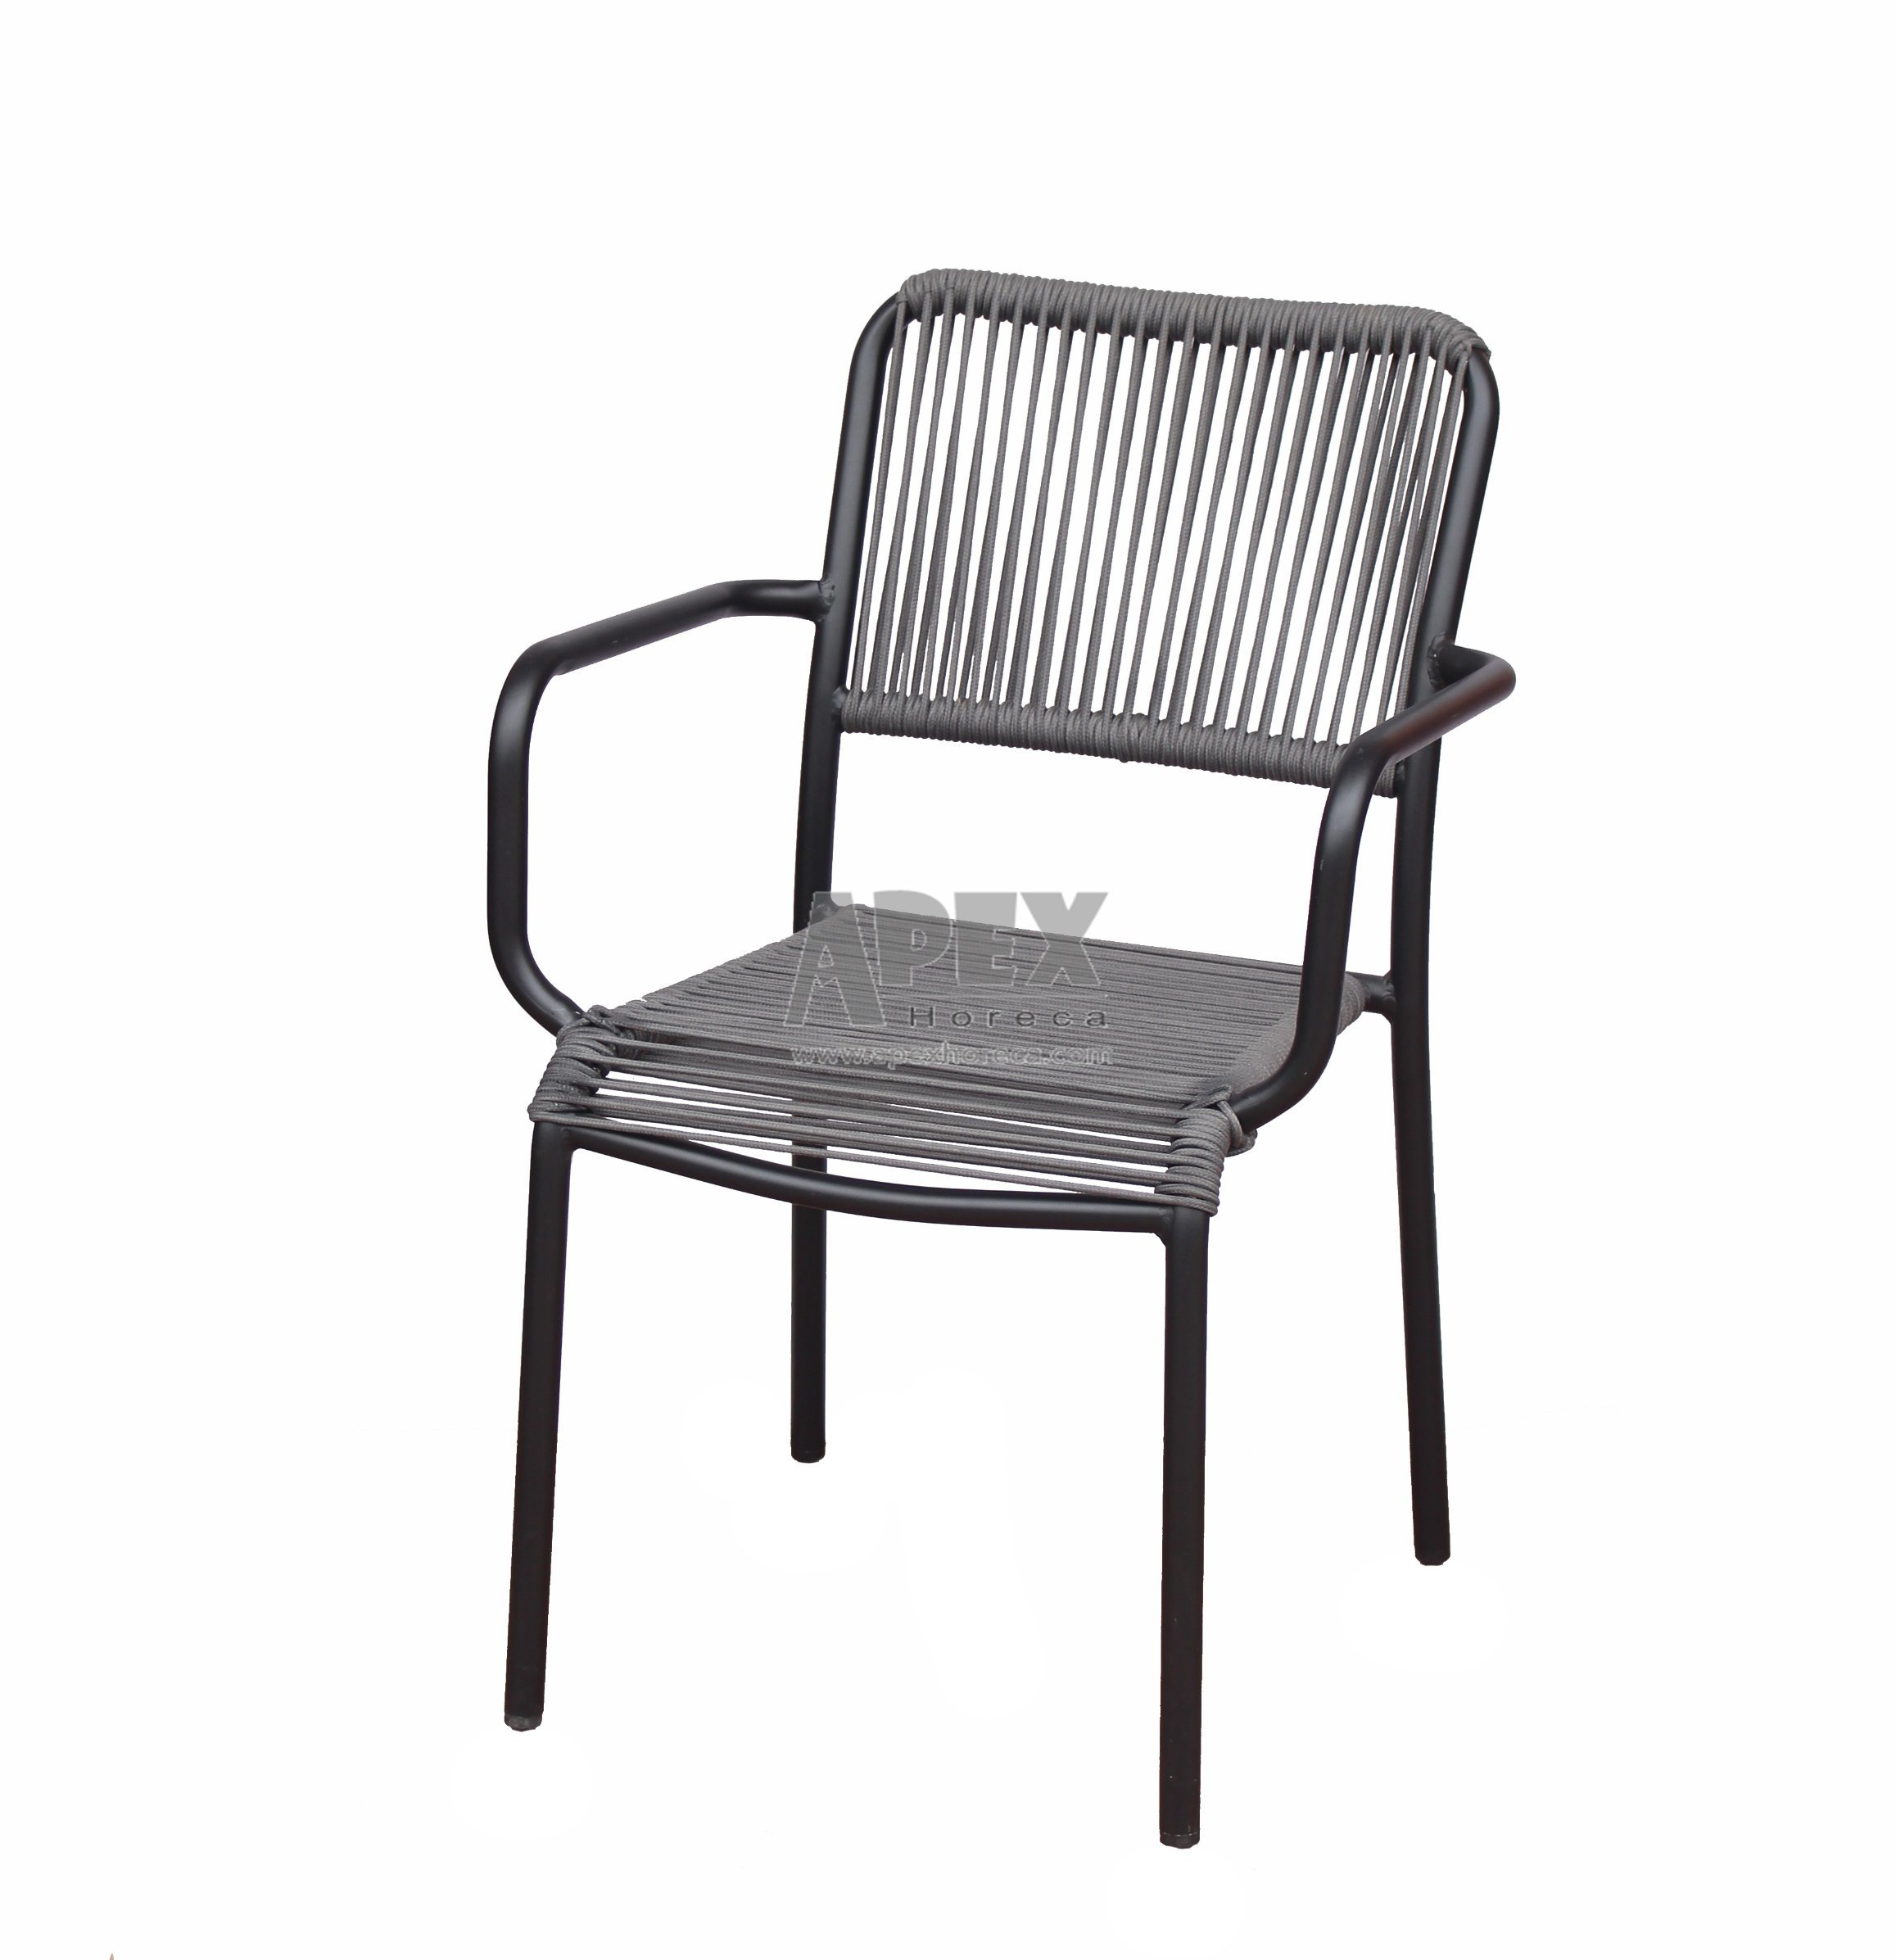 [Hot Item] Outdoor Garden Aluminium Rattan Wicker Stacking Coffee Chair